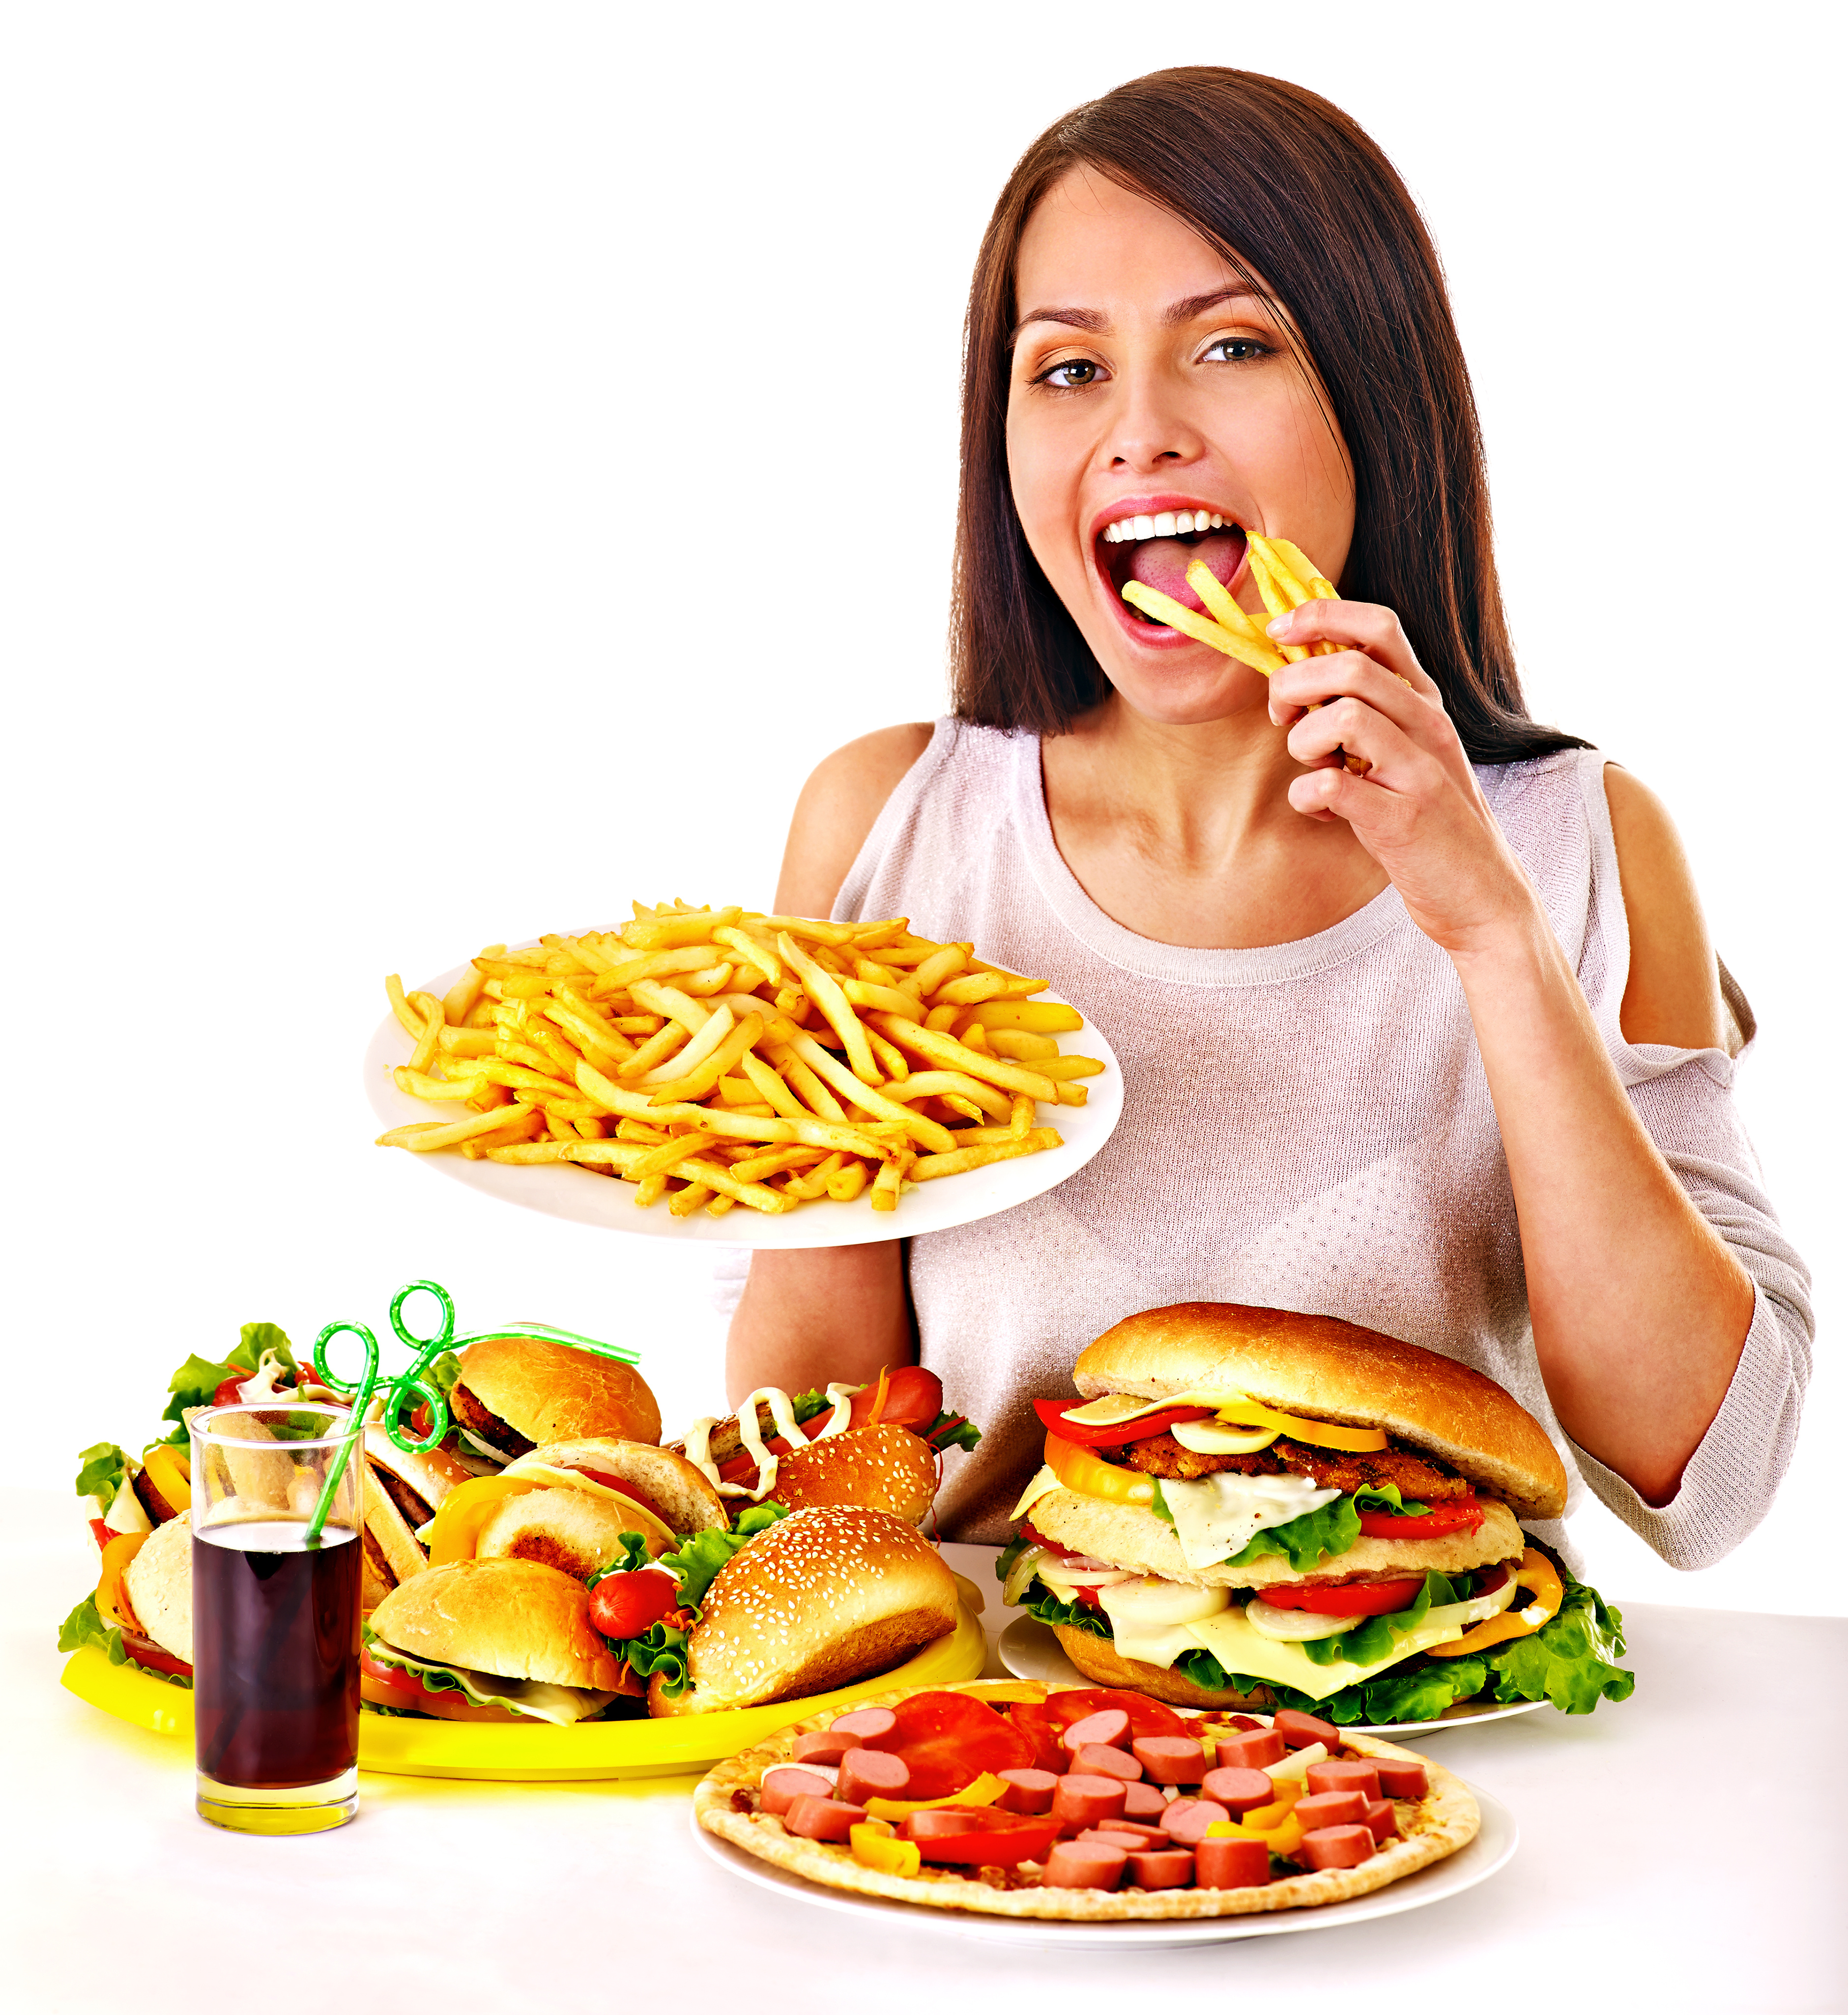 Fast Food Nutrition Ways To Make Fast Food Healthier